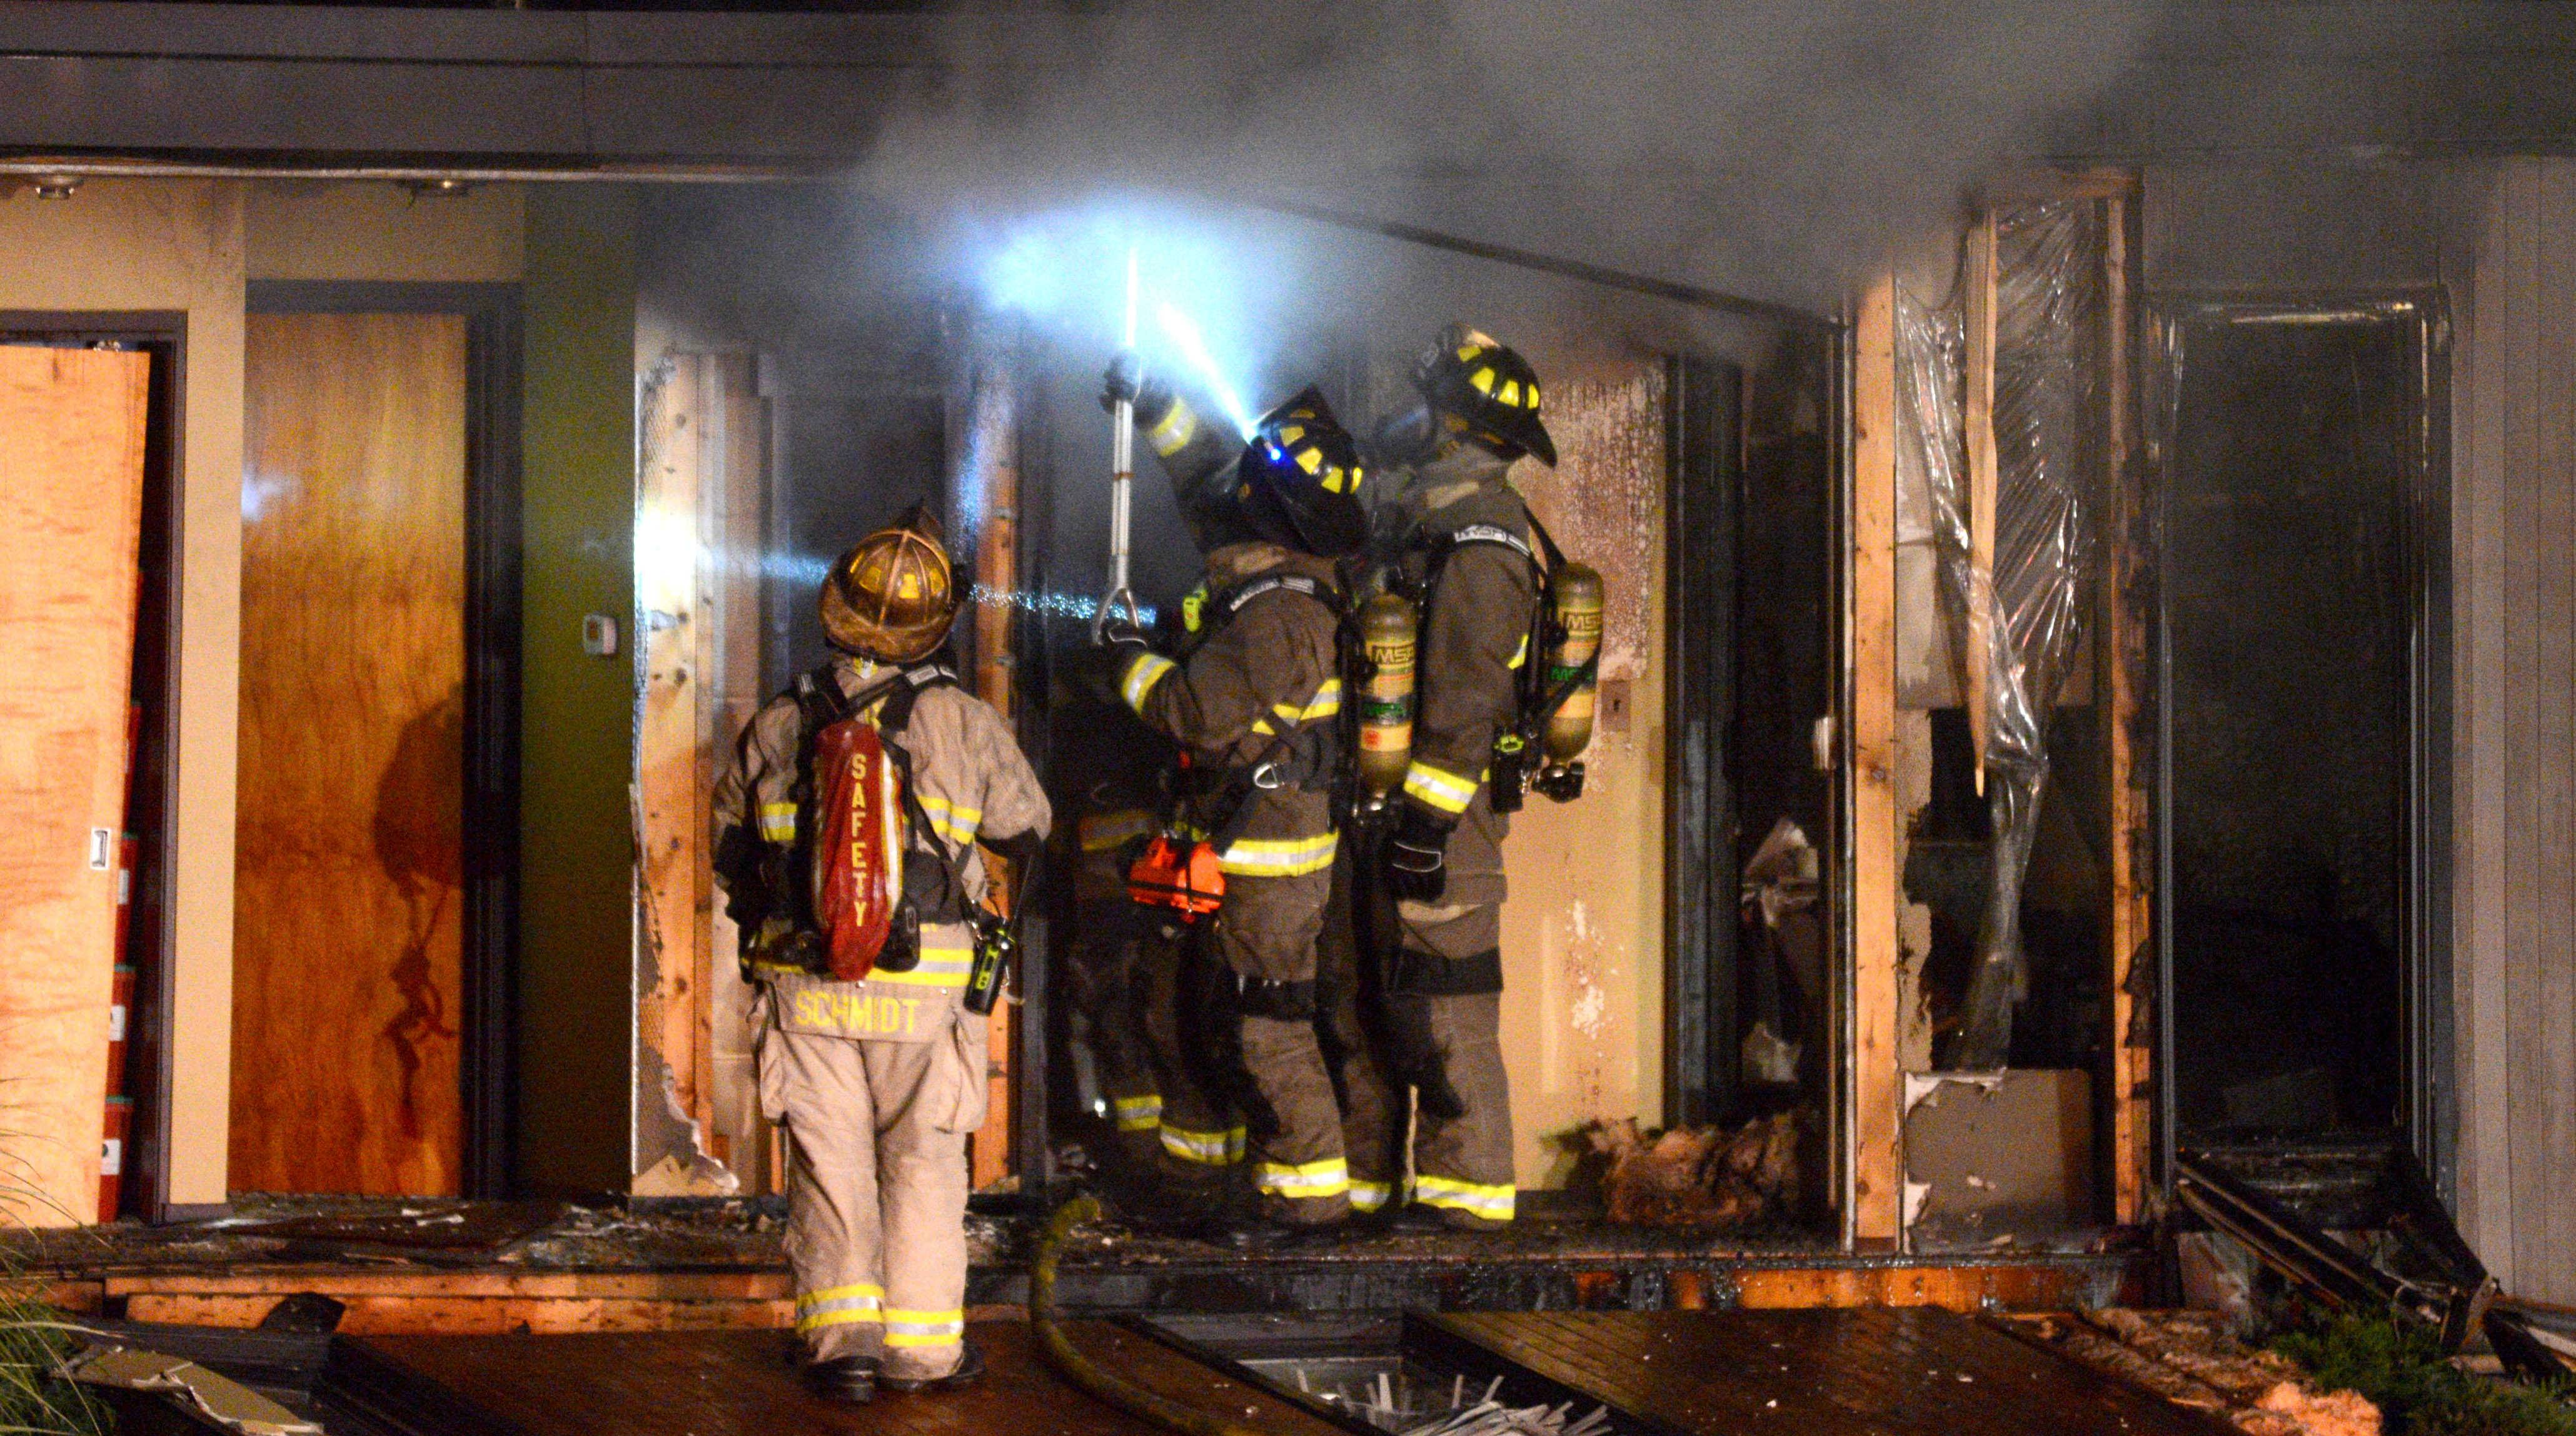 Firefighters work the scene of an explosion Monday night on the 1100 block of Morningside Drive in Elgin.